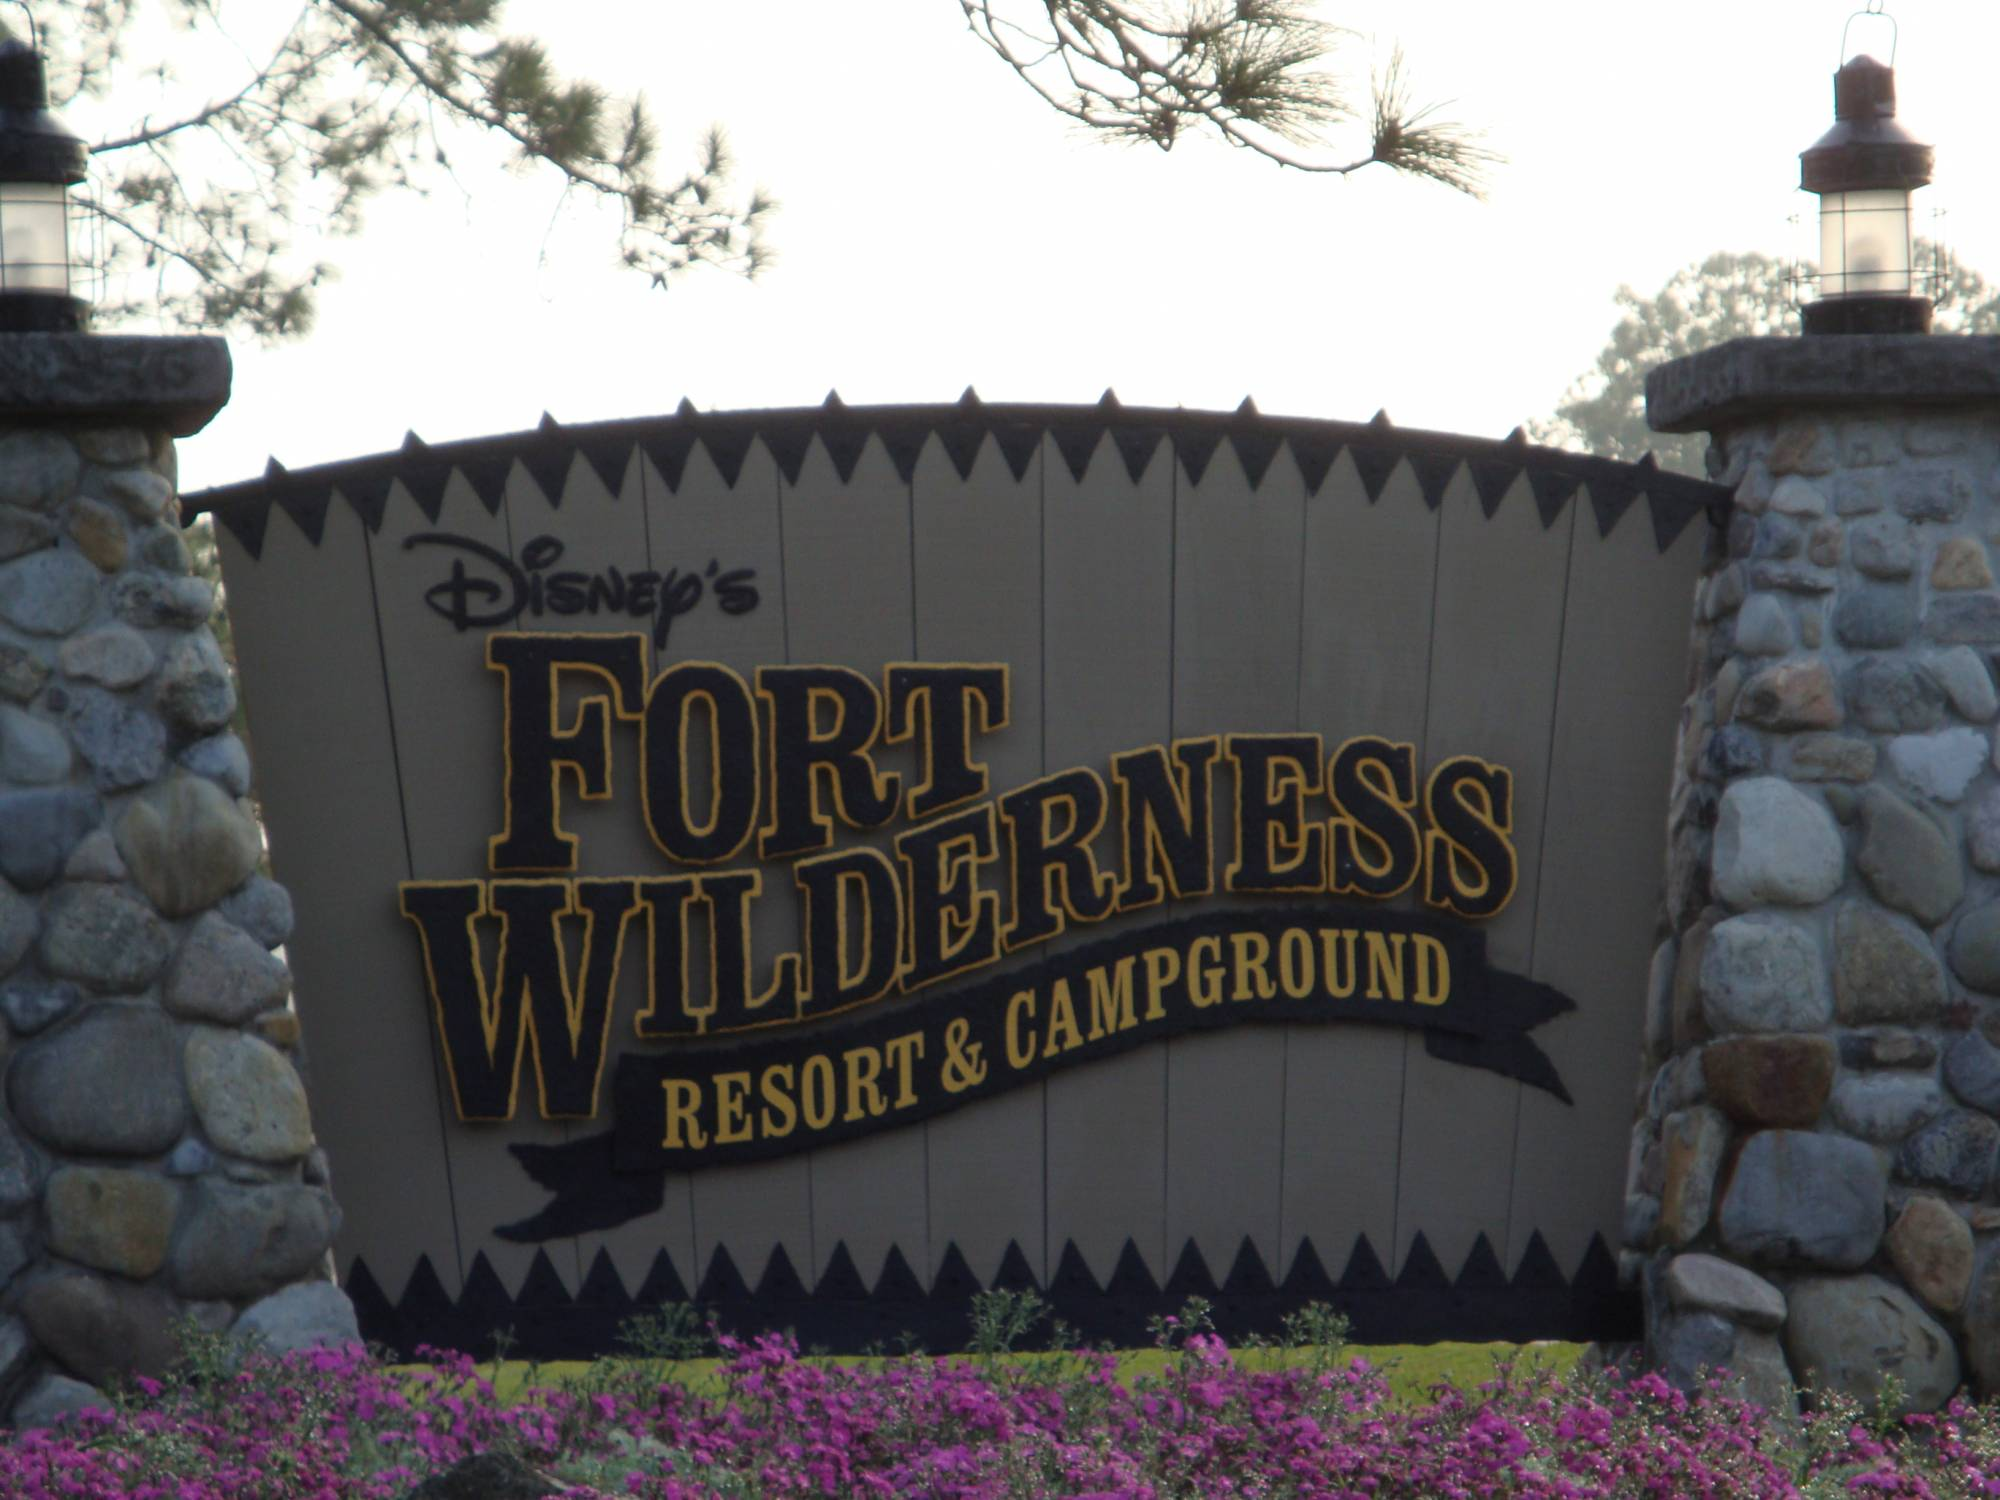 Discover the cabins at Disney's Fort Wilderness Resort and Campground | PassPorter.com